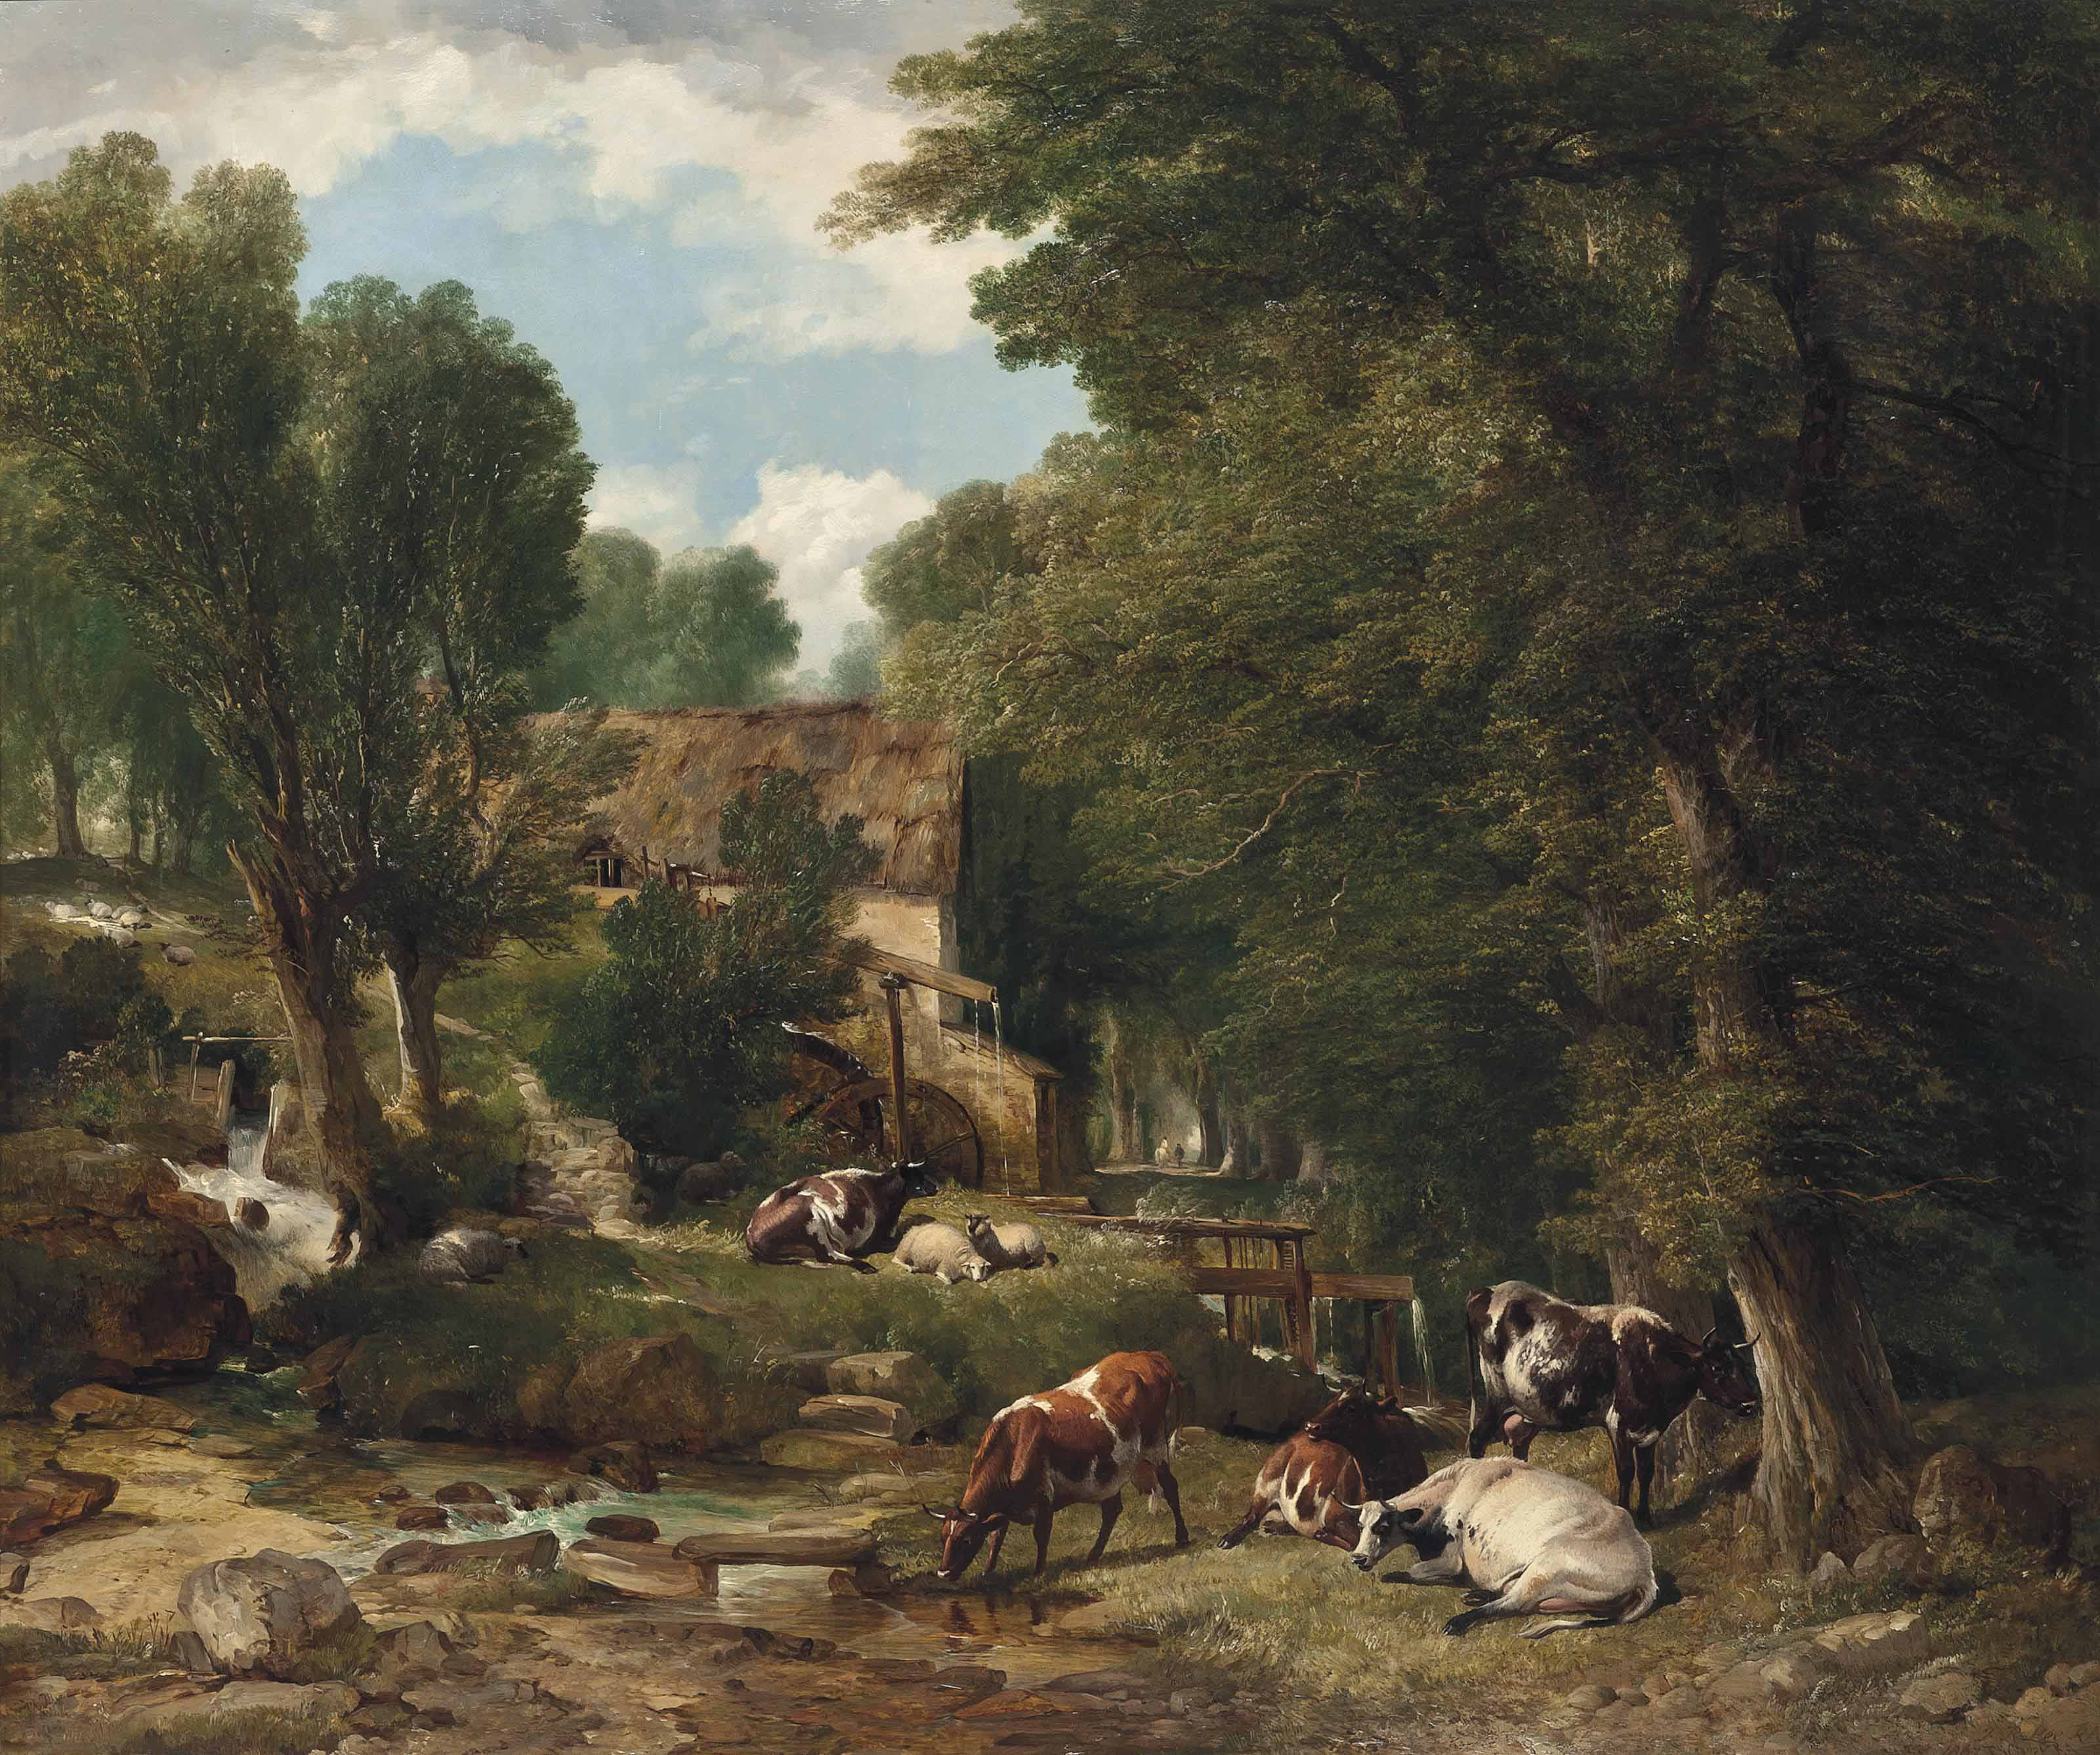 Across the village, beyond the mill